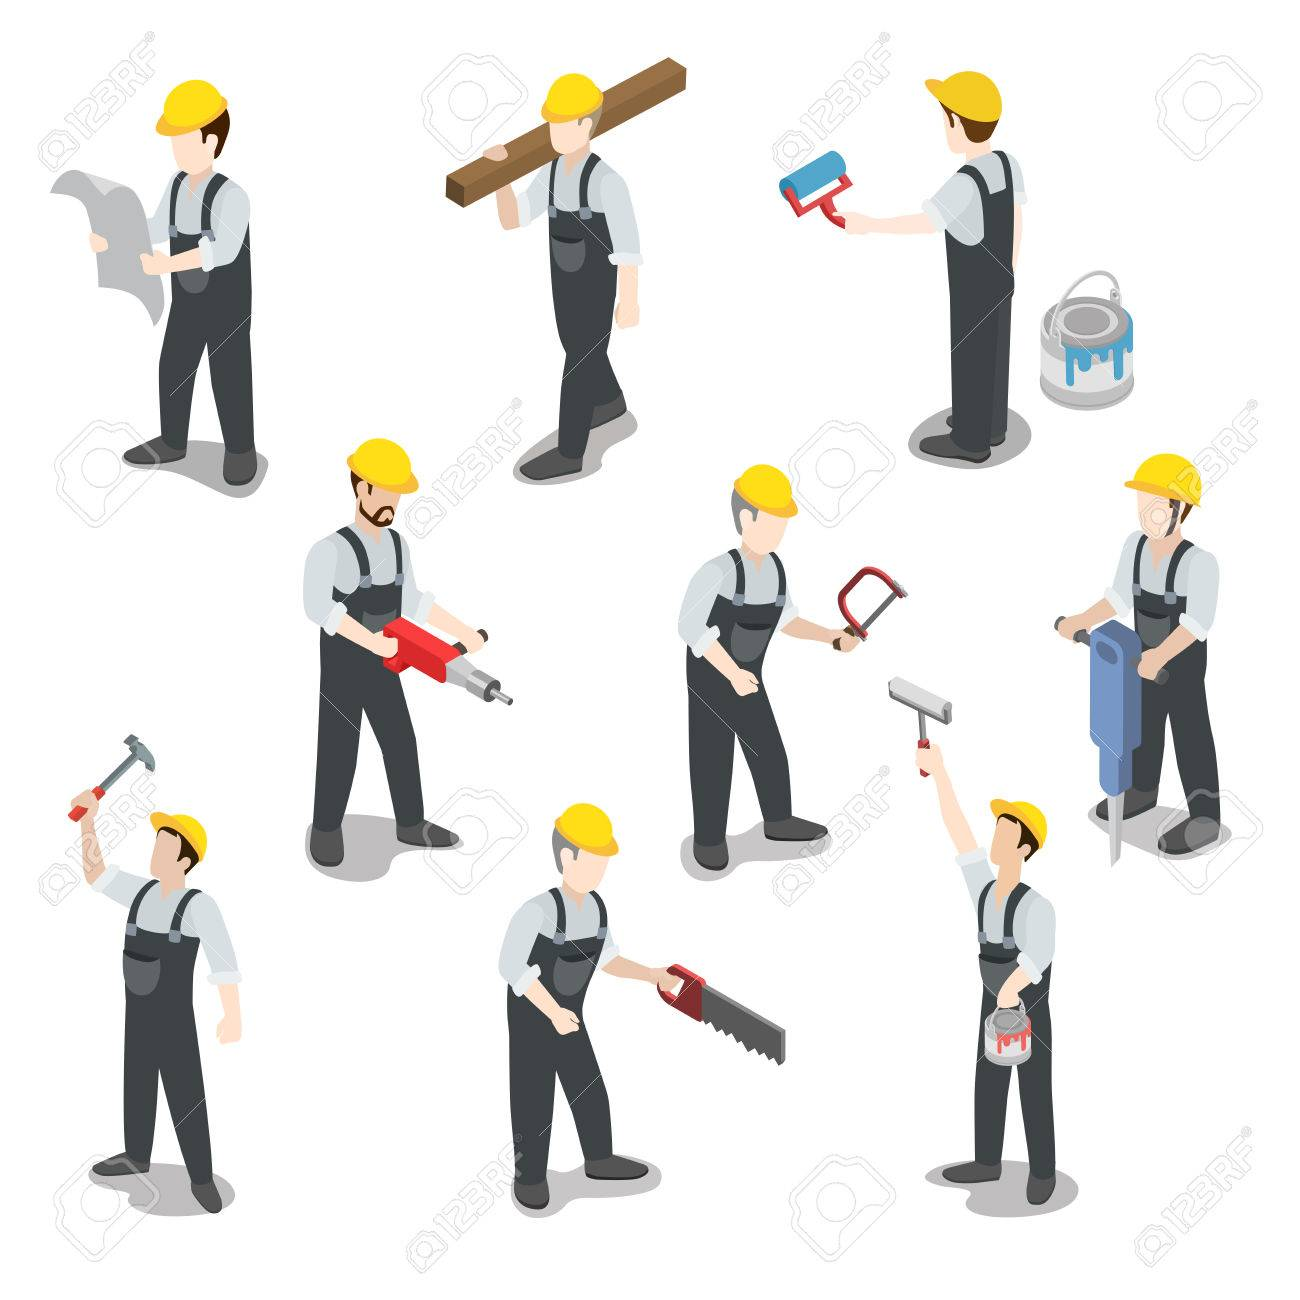 Flat 3d isometric builder construction worker icon set concept web infographics vector illustration. Carpenter painter driller architect foreman swamper. Creative people collection. Stock Vector - 56931651